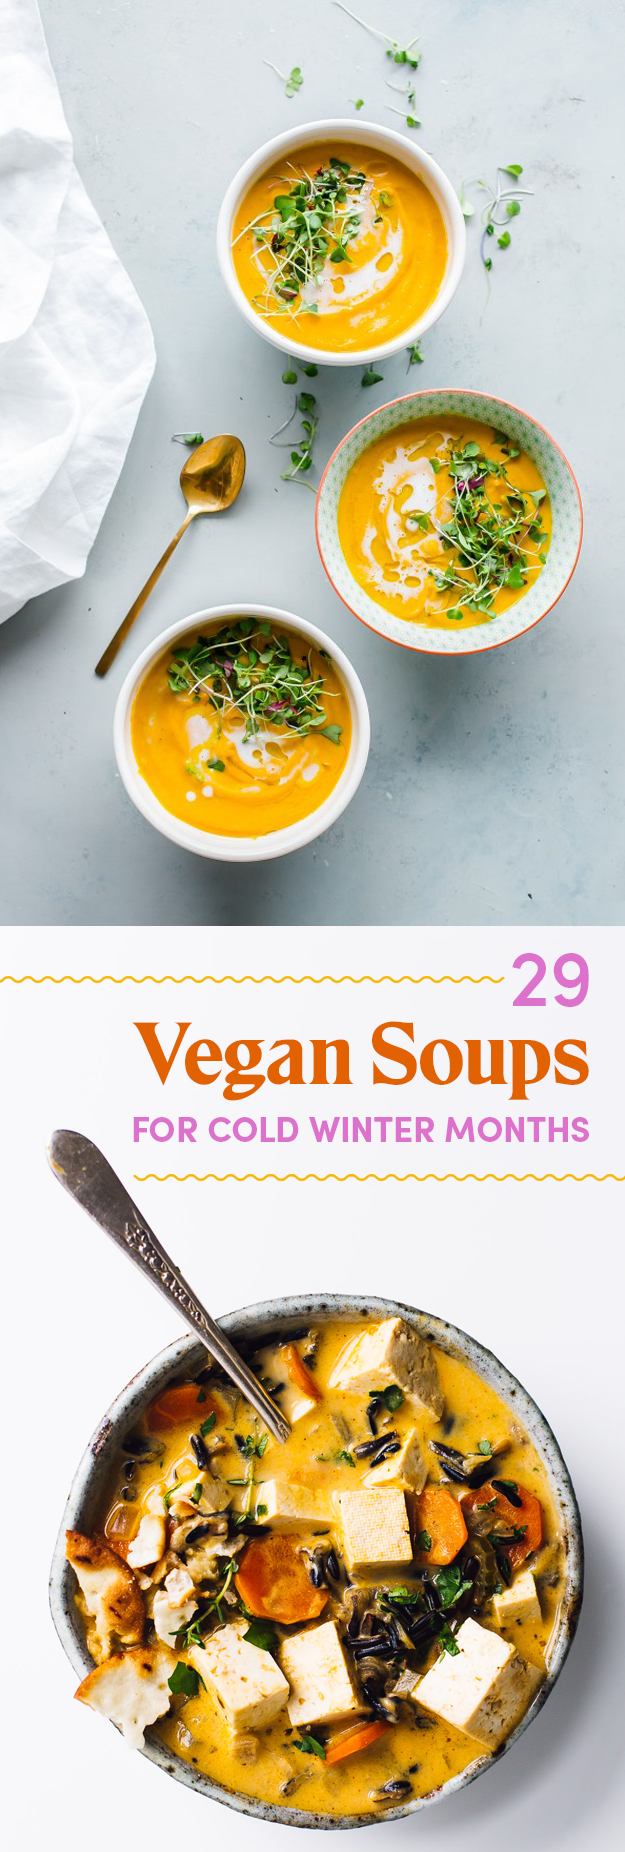 29 Delicious Vegan Soup Recipes For Cold Winter Months